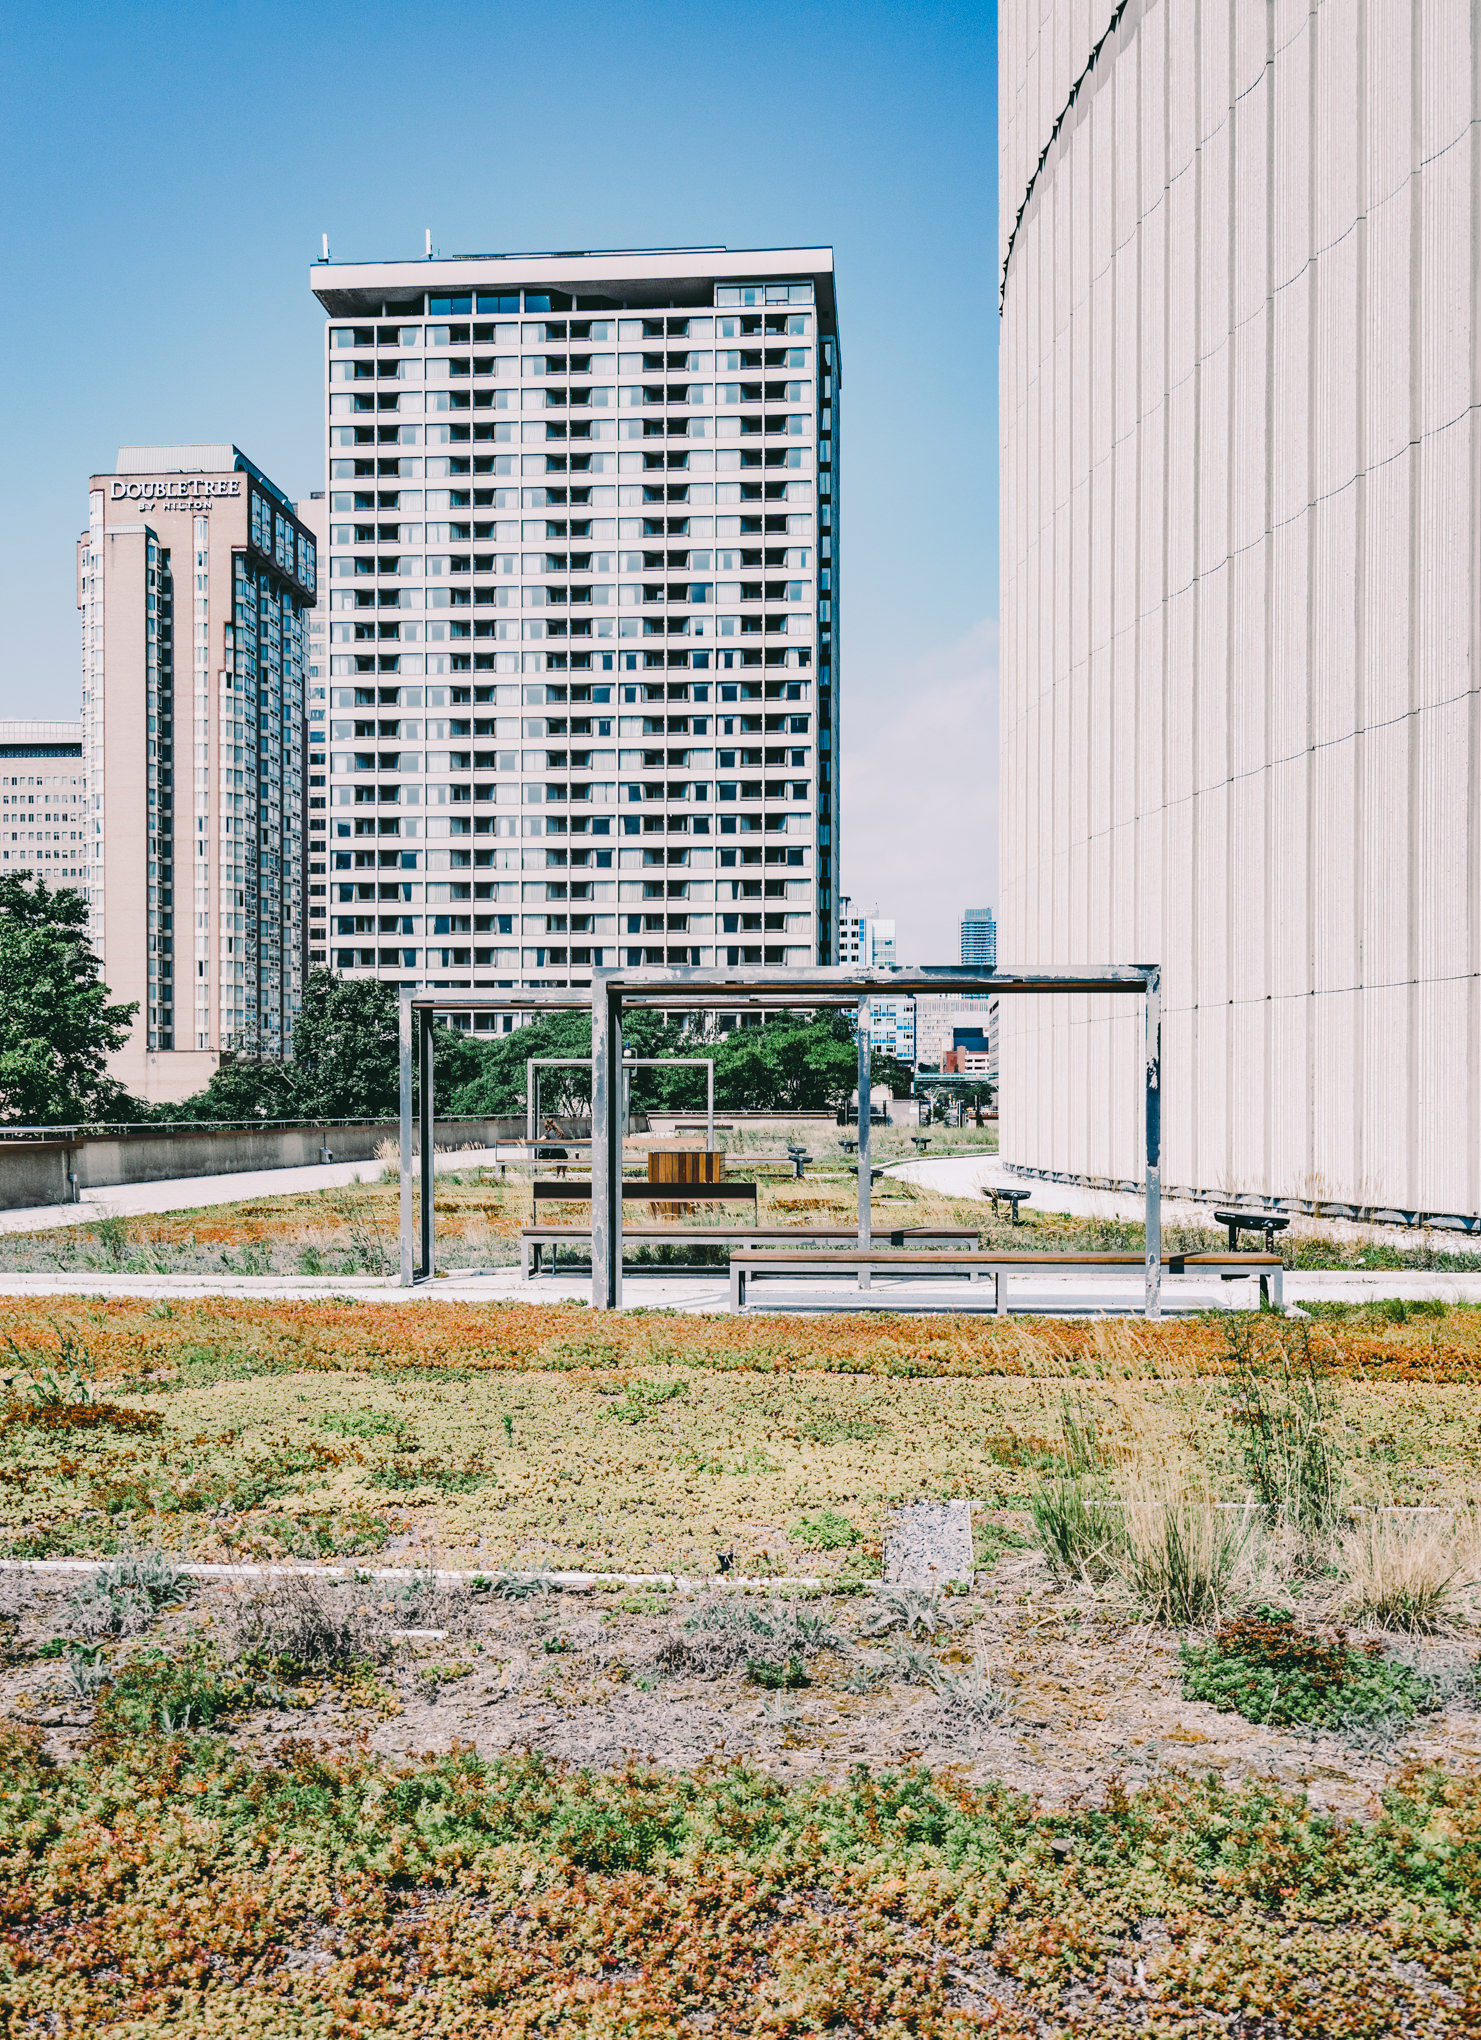 People can relax and read up on the Green Roof at City Hall Toronto